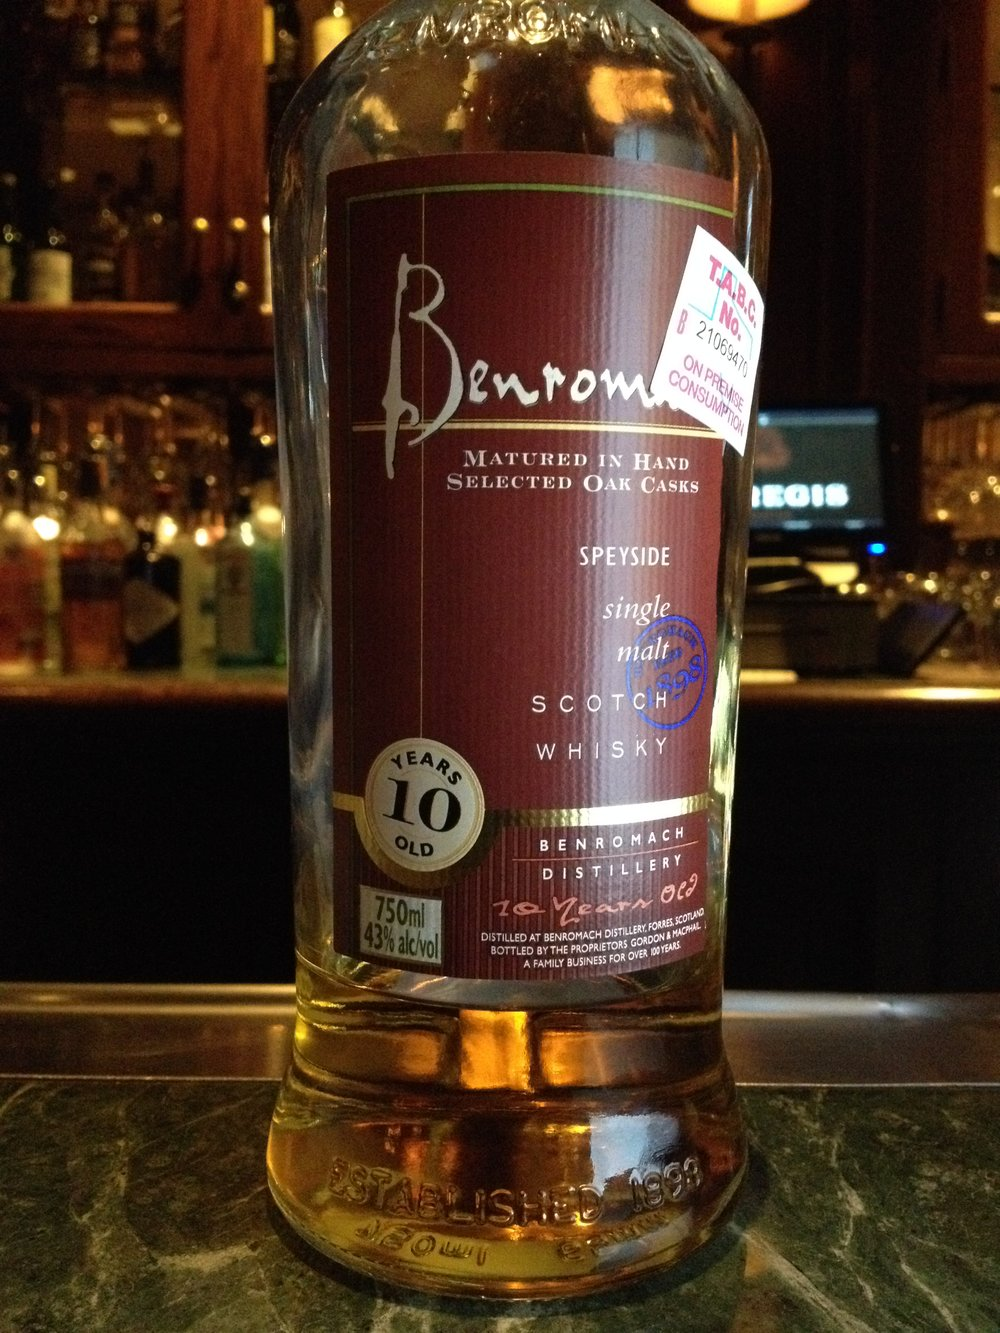 10 Year Old | 43% ABV - Distillery | Benromach